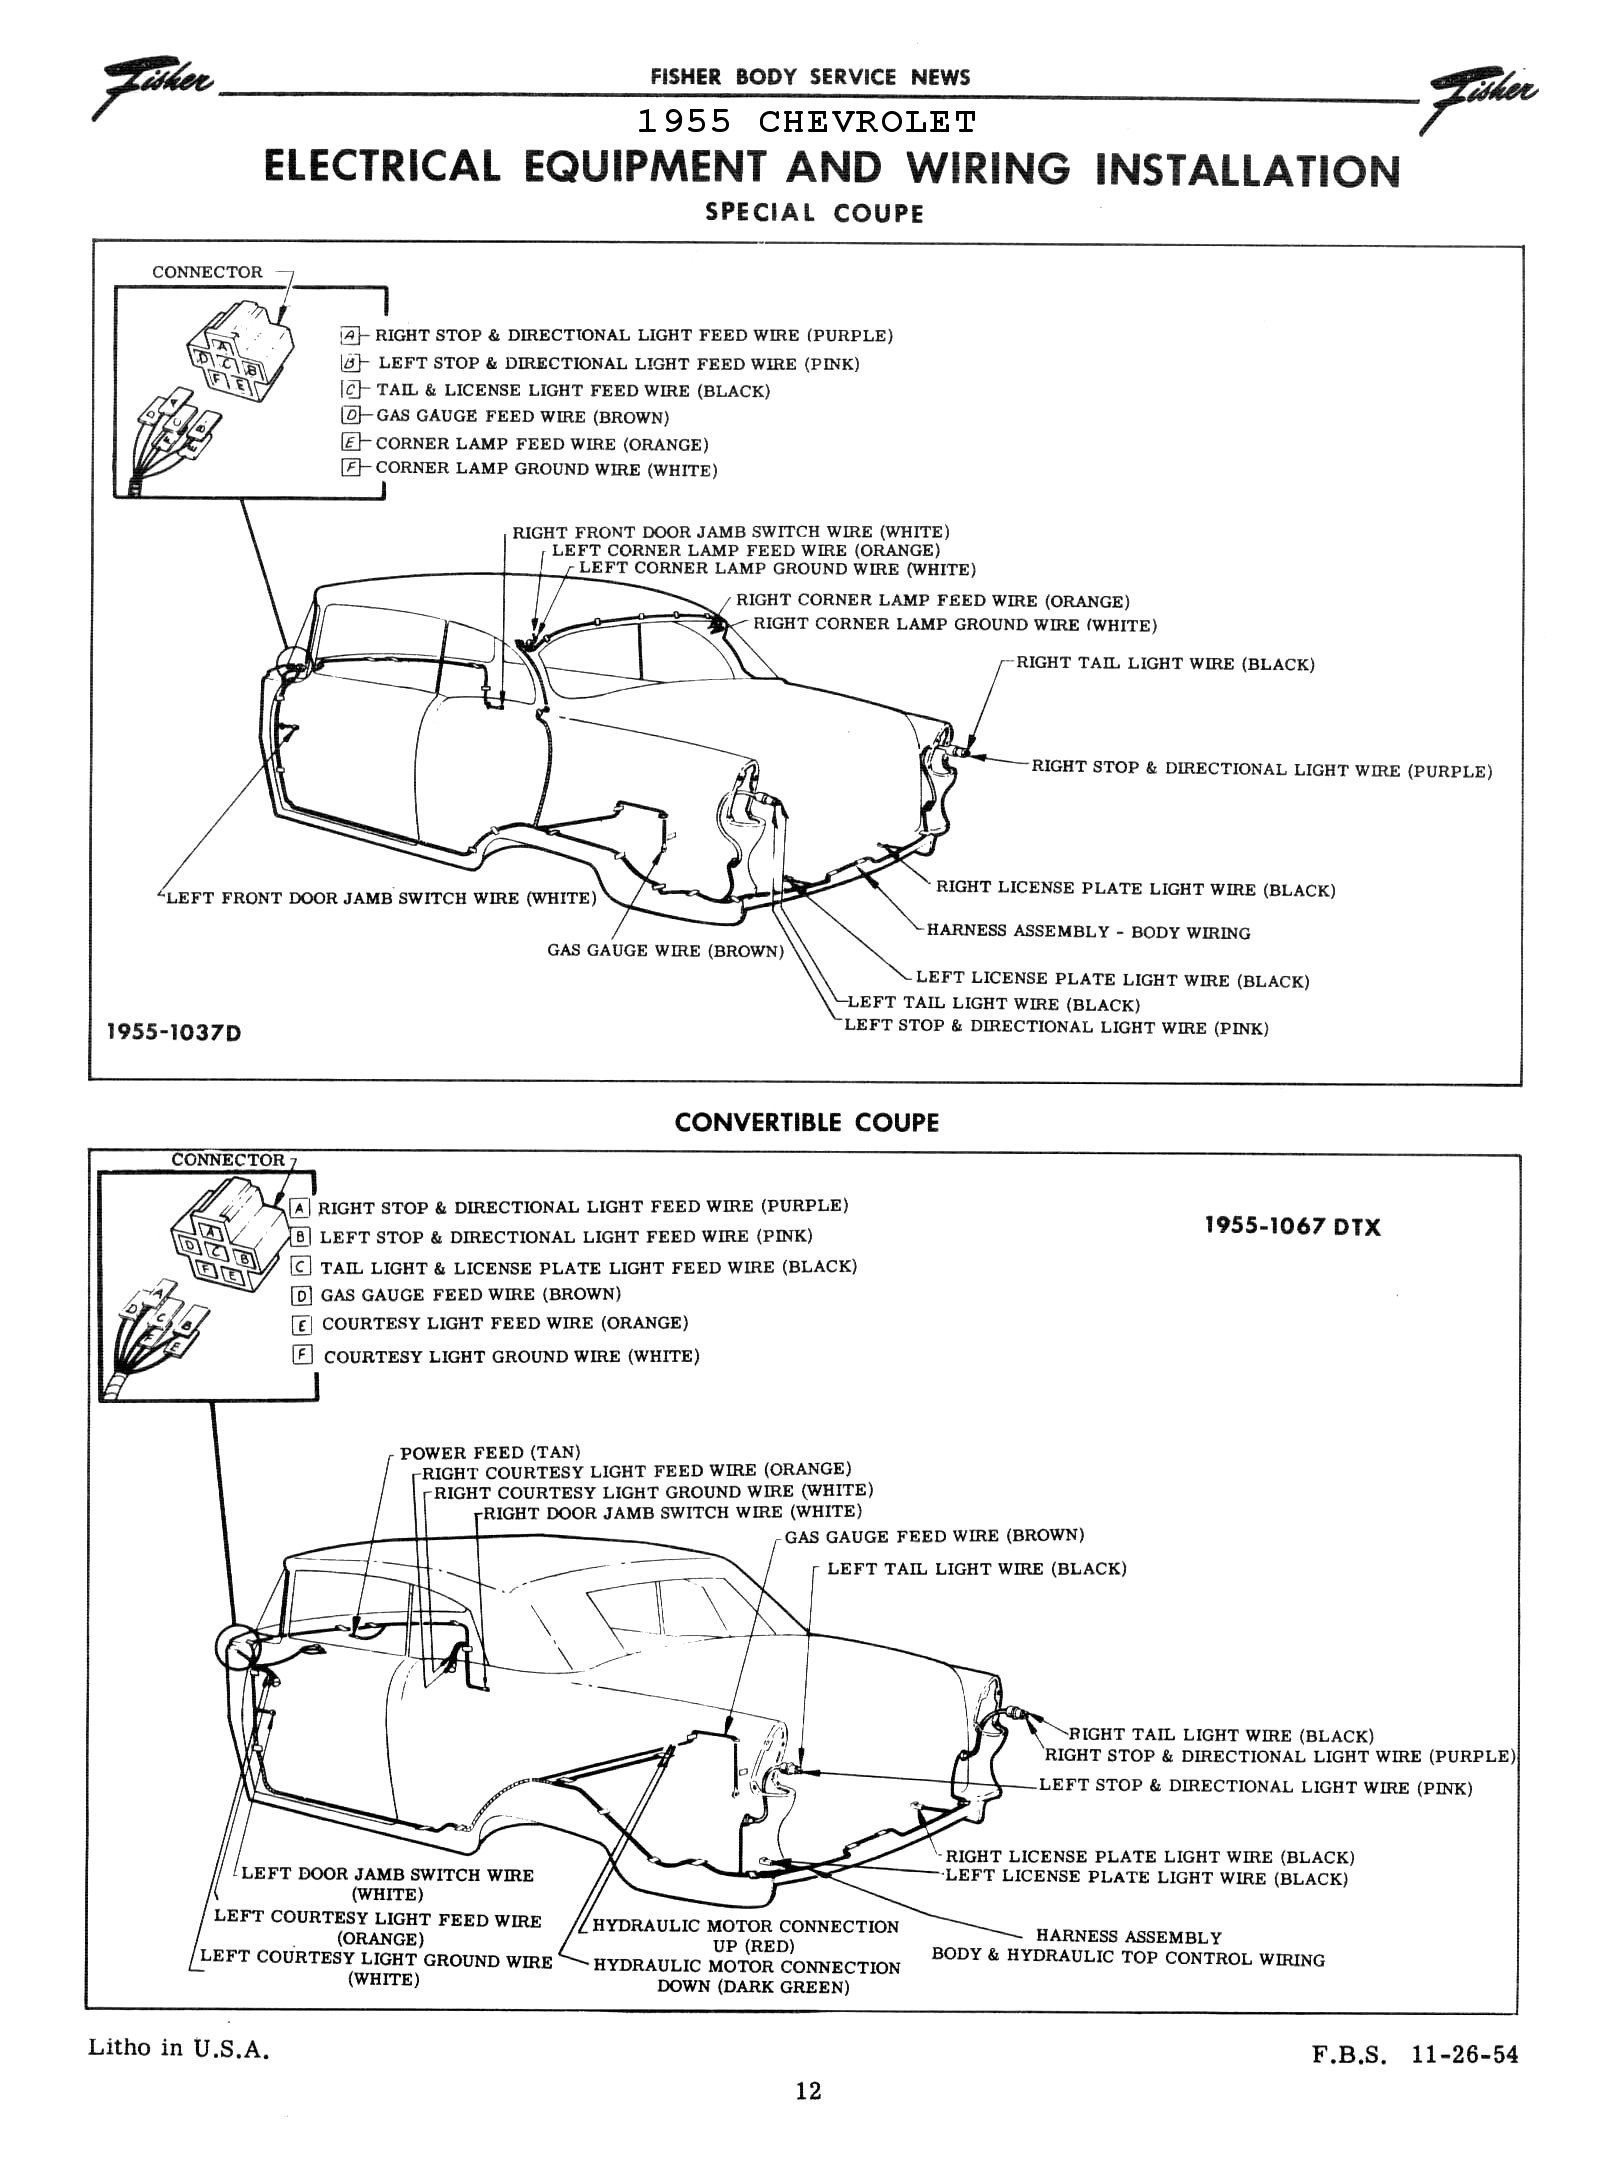 wiring diagram for 1955 chevy bel air ireleast info chevy wiring diagrams wiring diagram